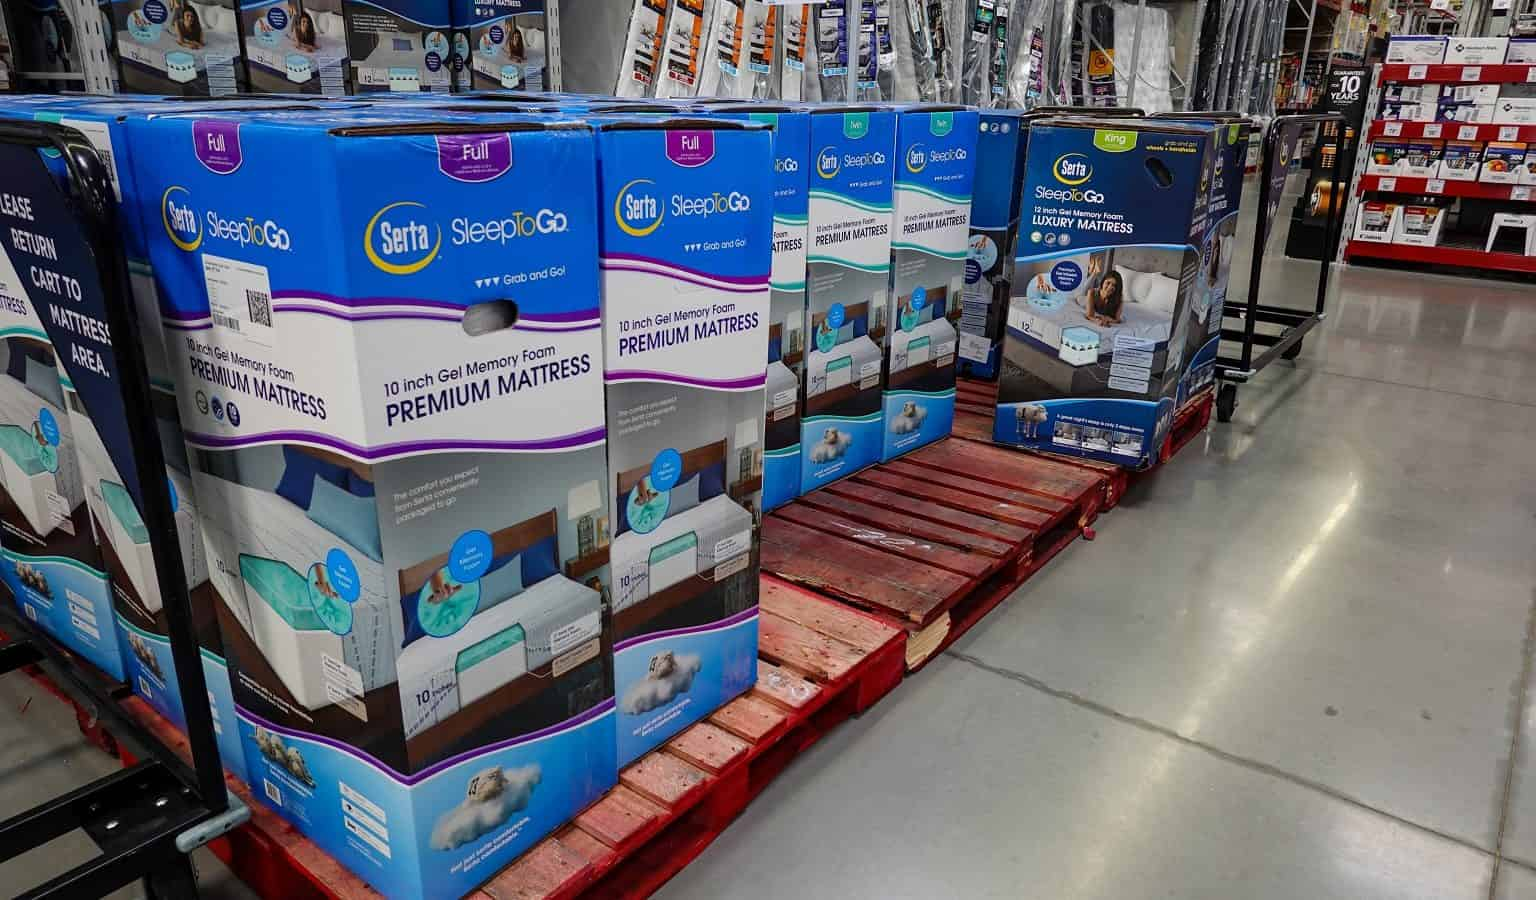 5 Best Boxed Mattresses 2021 We Recommend Mostly Around 200 Terry Cralle